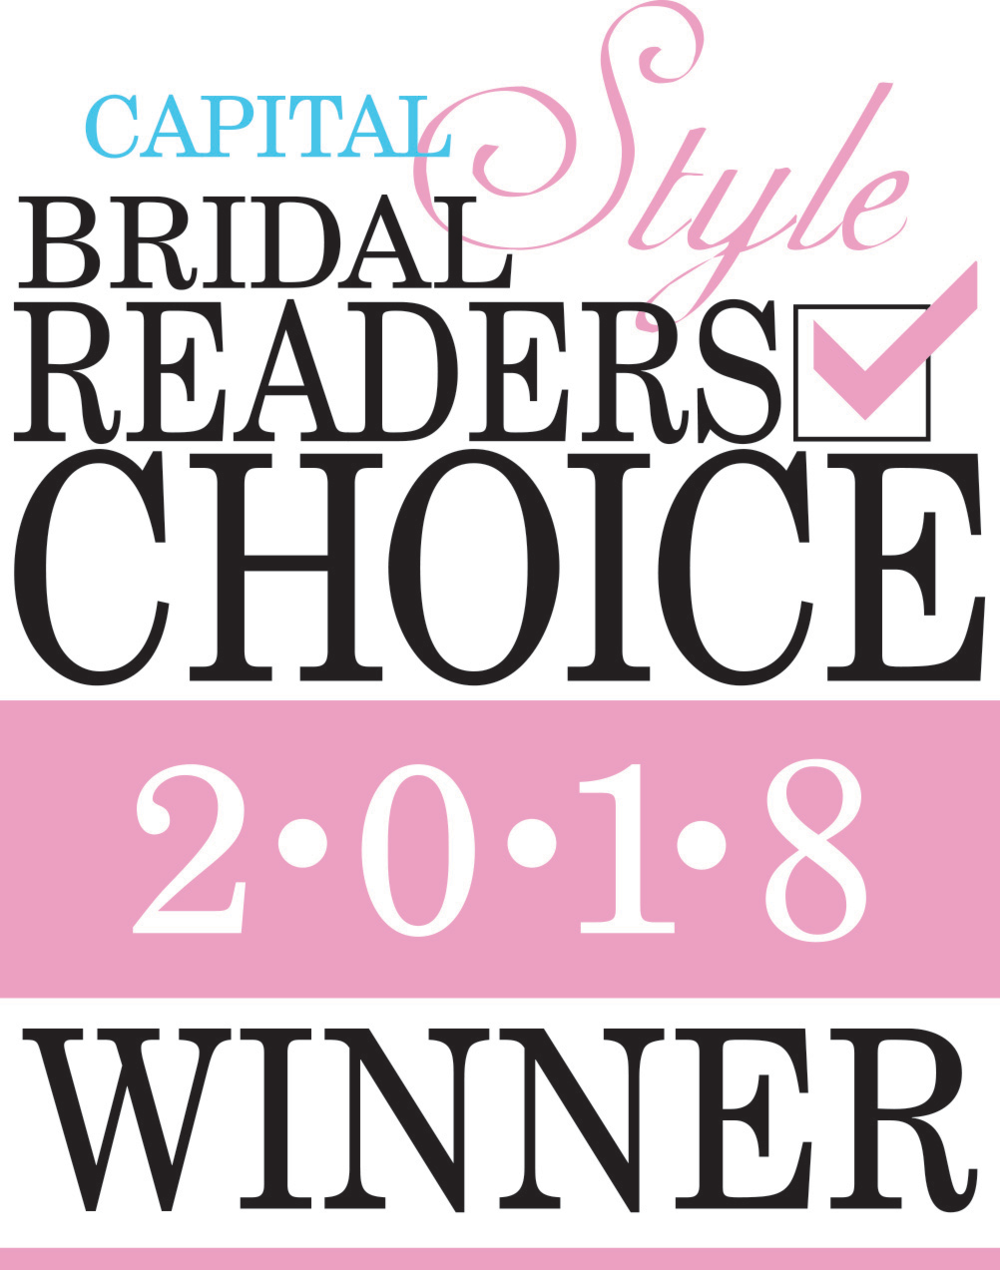 capstyle_bridal_readers_choice_2018_winner.png